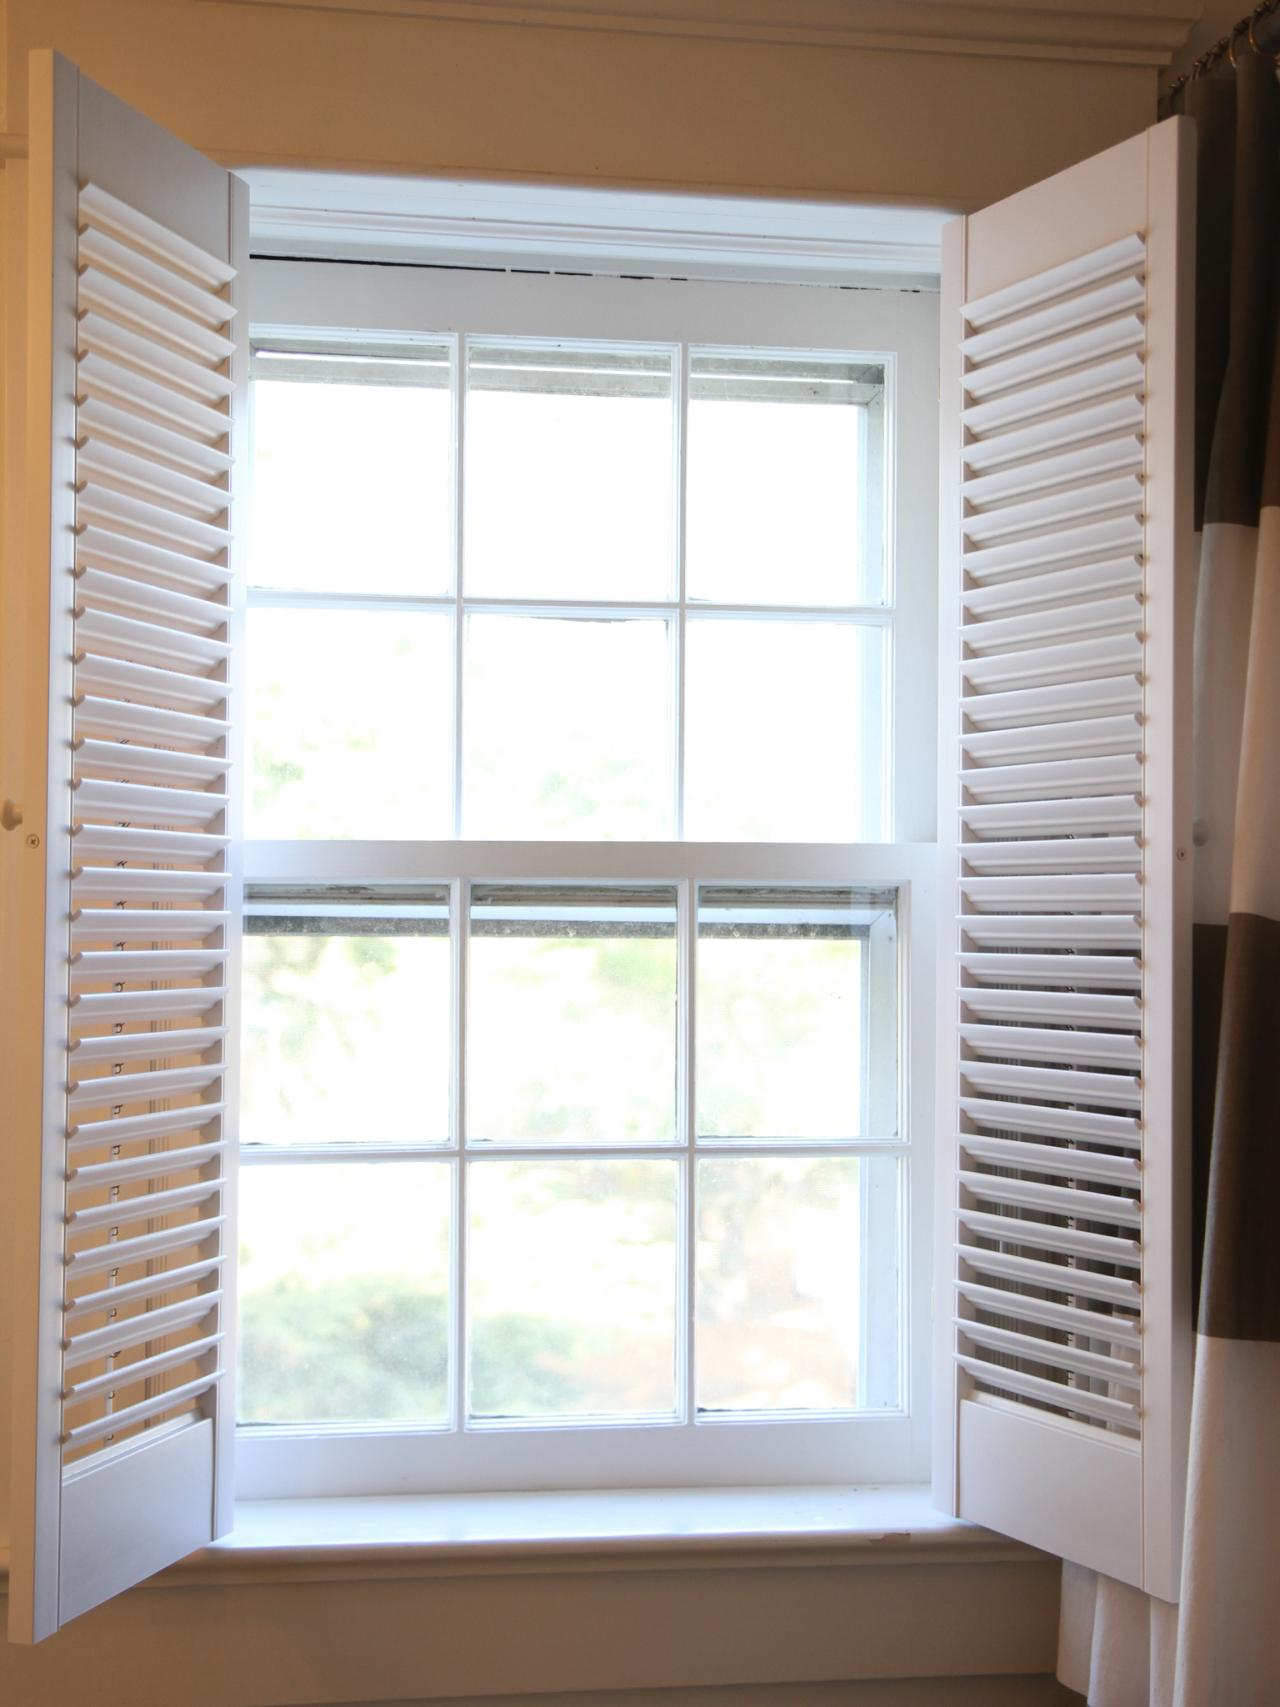 beauty for panels questions the answered front window fashions classic room living heritance your of blinds tilt with by rocklin drapery shutters ca plantation california